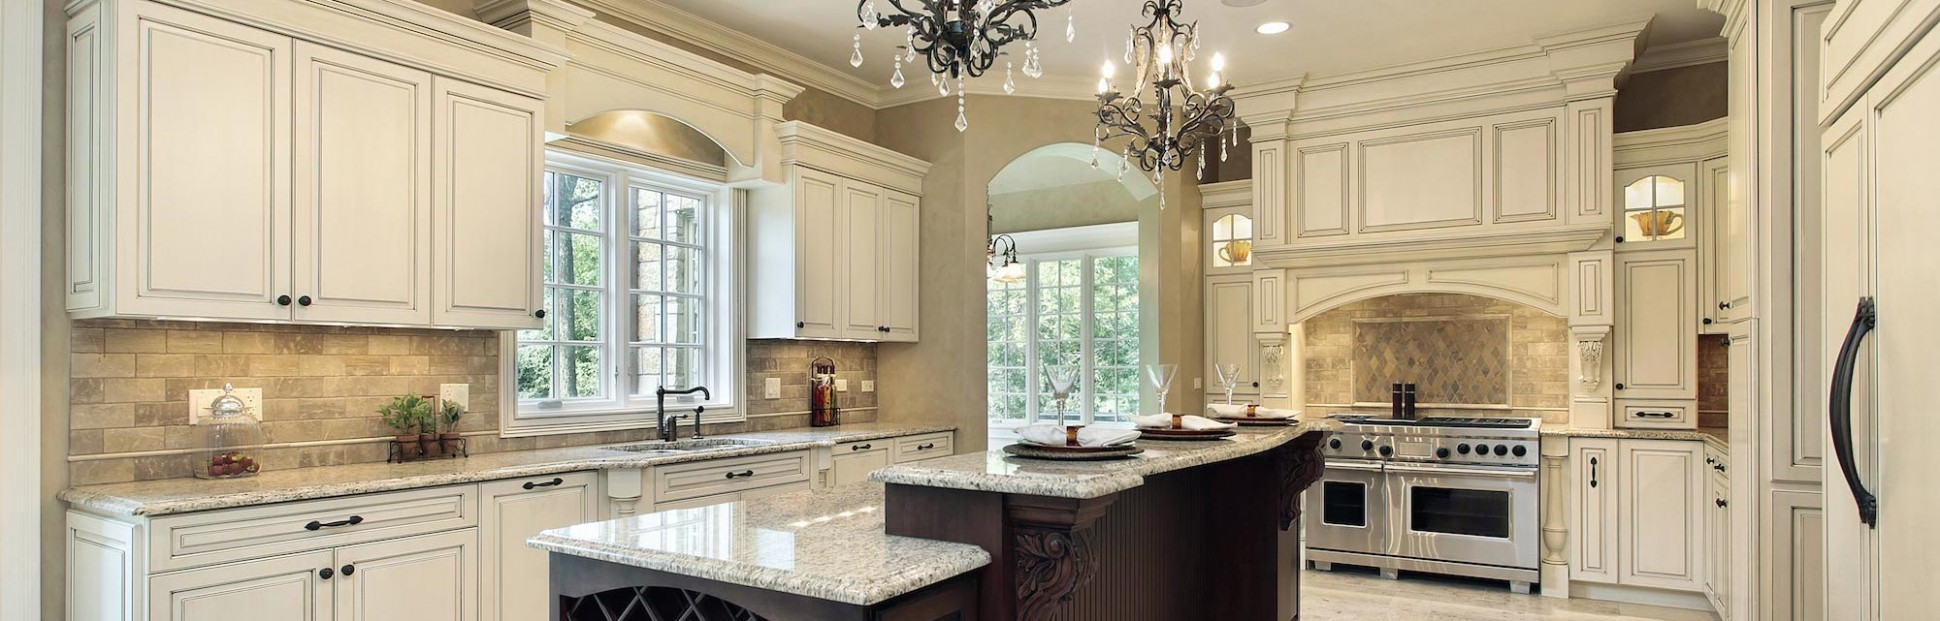 Brightwaters Cabinets, Long Island NY  Kitchen Cabinets Long Island - Long Island Kitchen Cabinets Wholesale